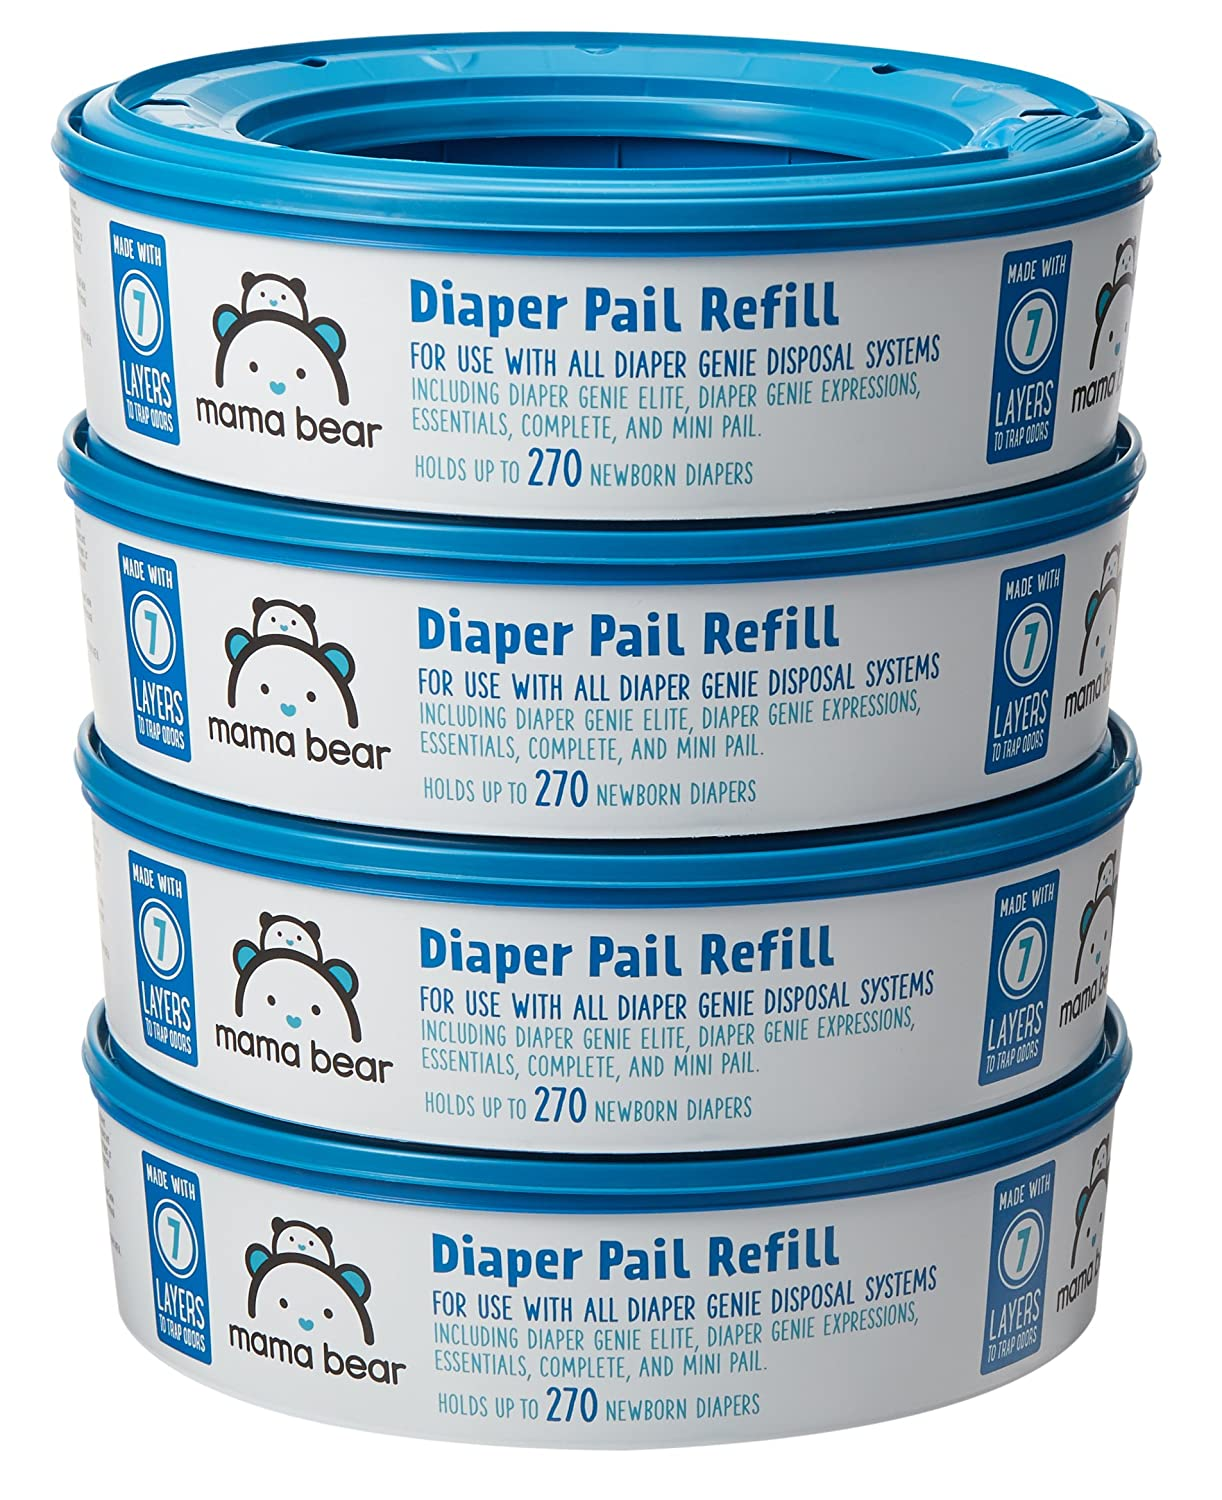 Amazon Brand - Mama Bear Diaper Pail Refills for Diaper Genie Pails, 270 Count (Pack of 8) Amazon.com Services Inc. B07CRVNTK1